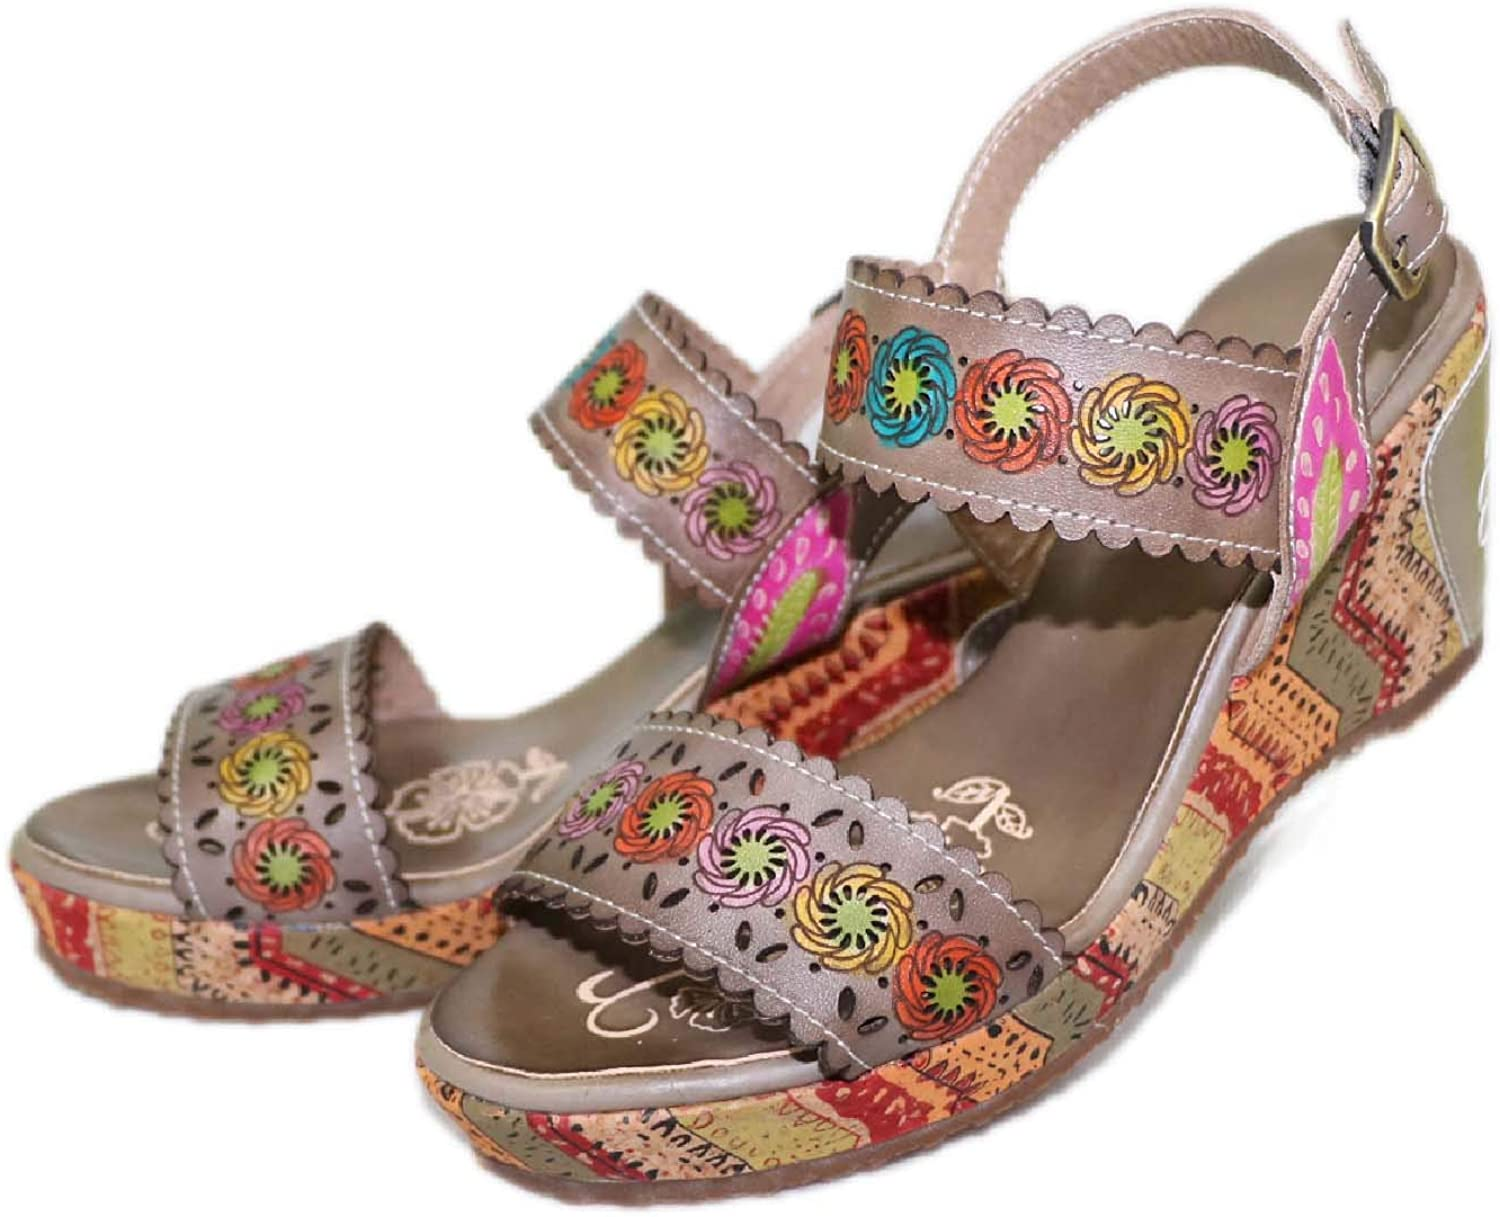 CrazycatZ Womens Leather Hand Painted Fashion Wedged Sandals Floral Sandals